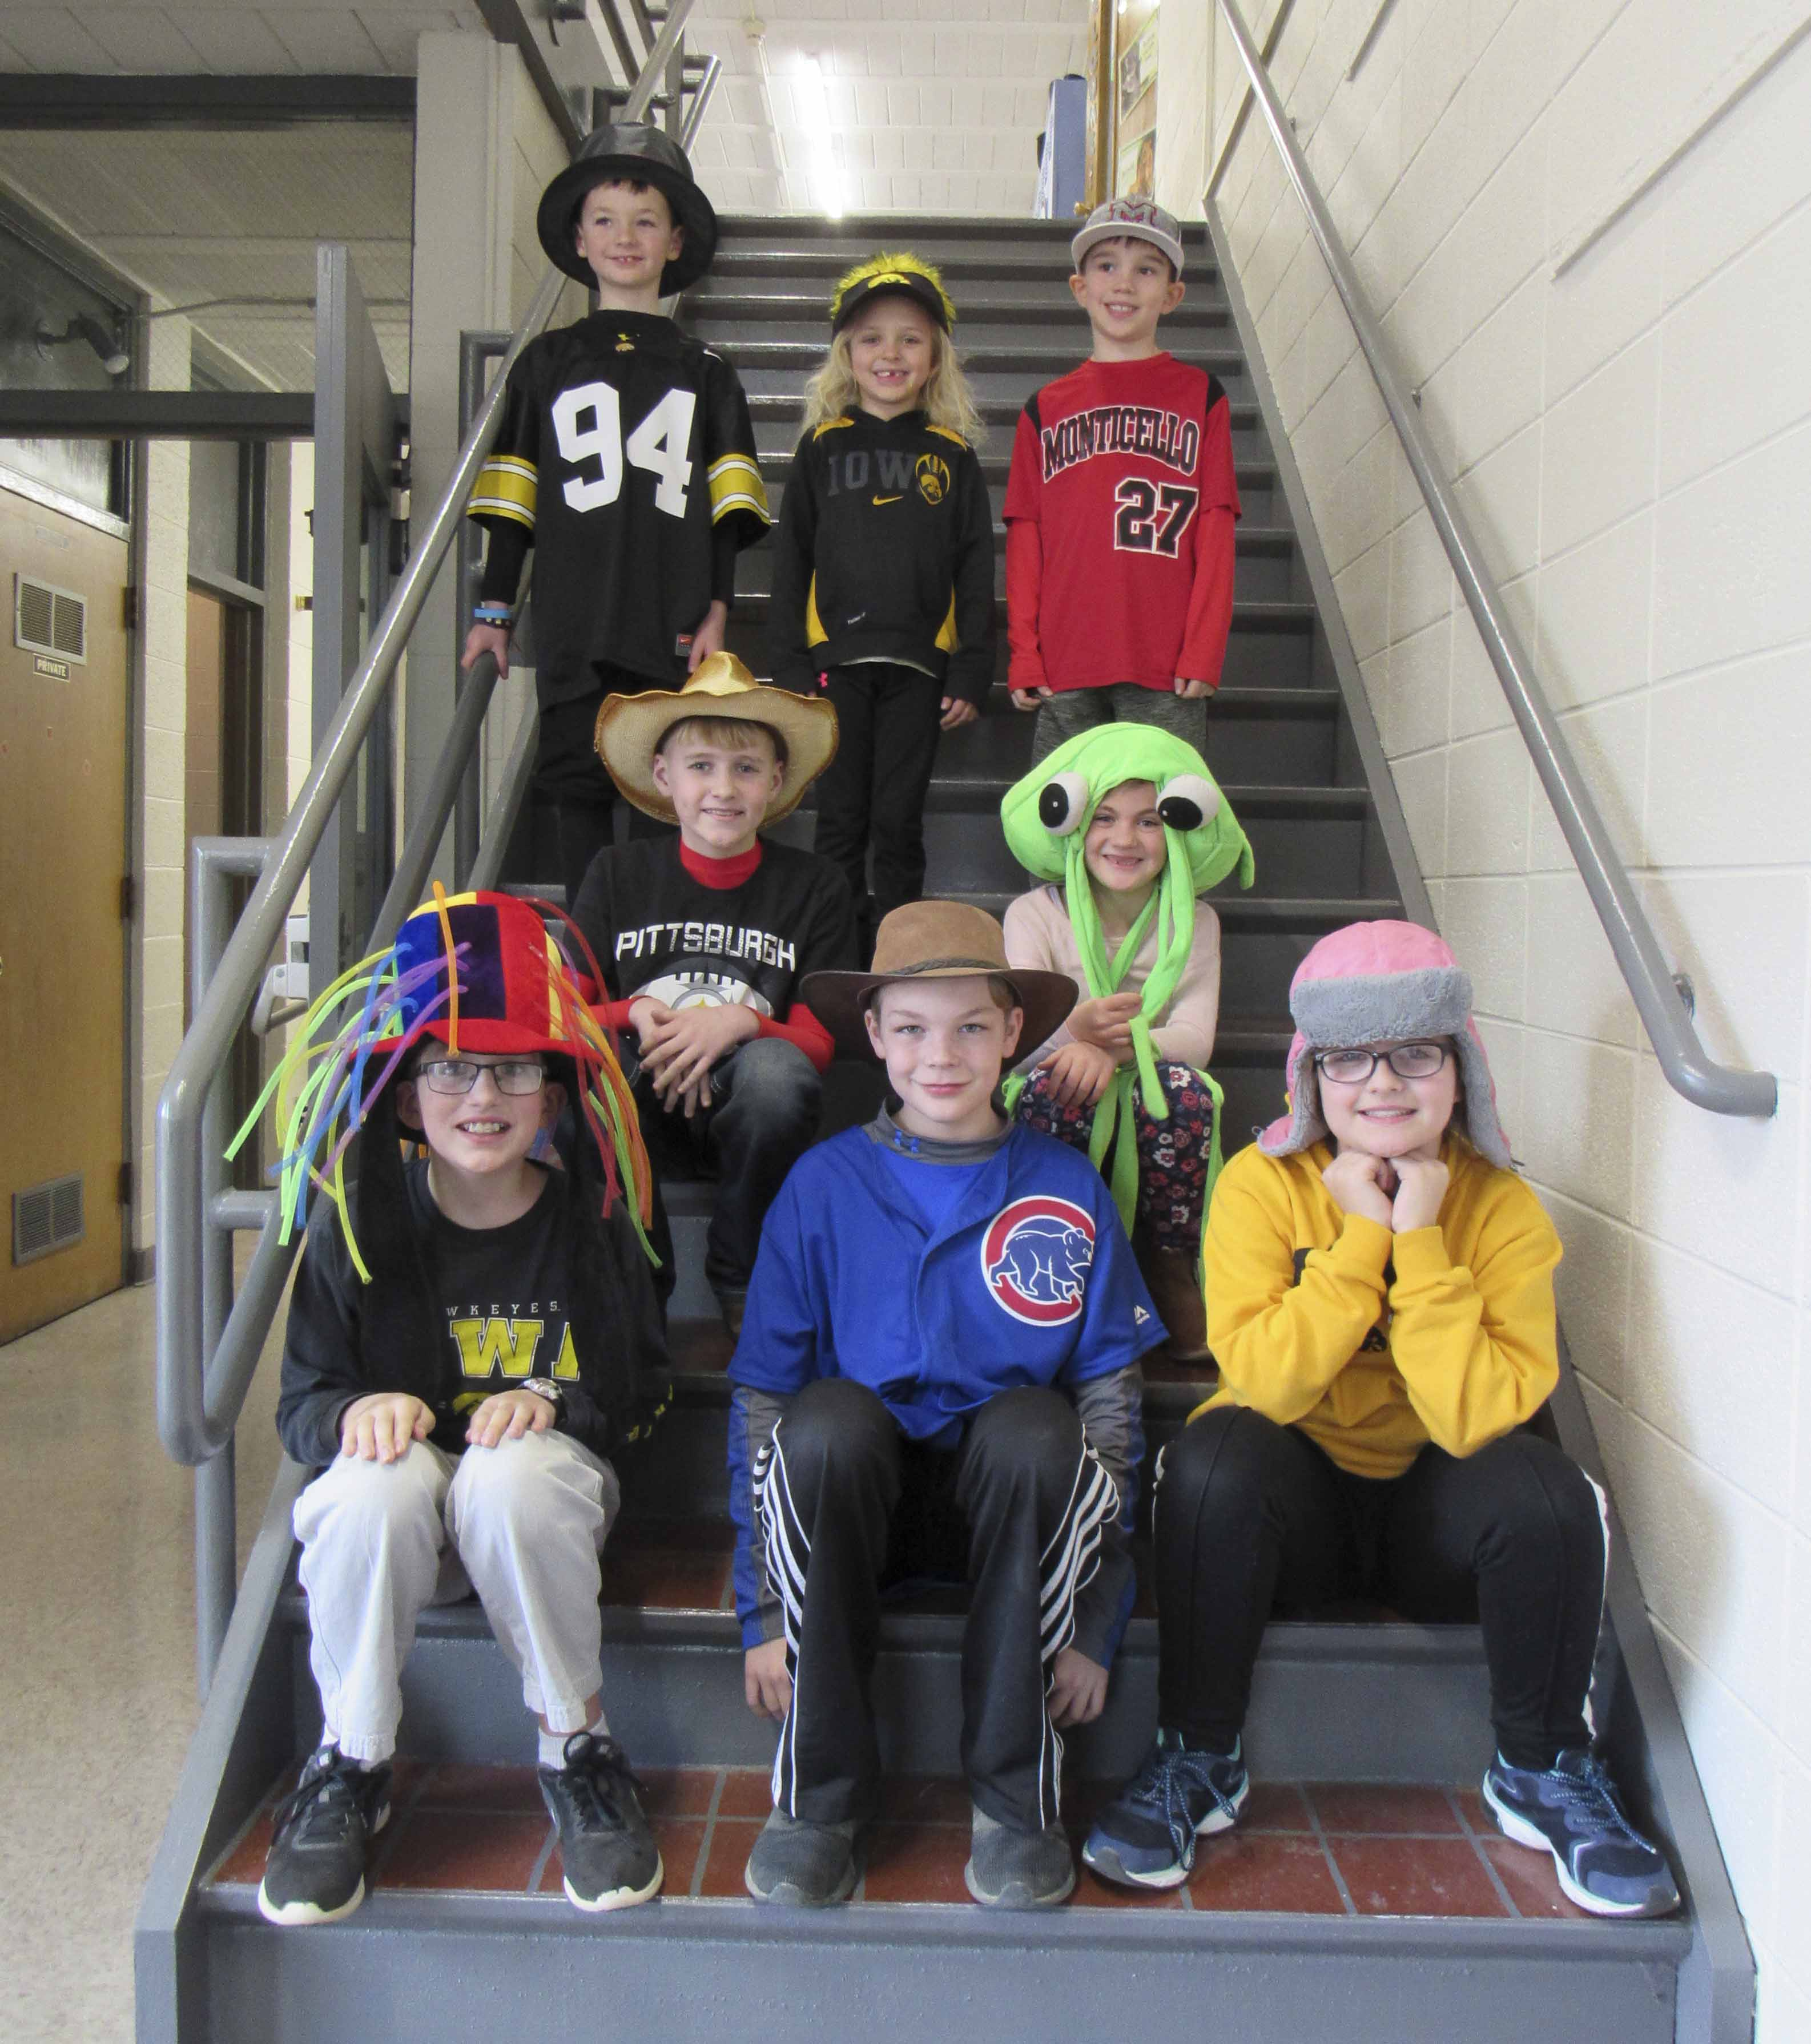 Students at Sacred Heart Catholic School celebrated Catholic Schools Week, Jan. 28-Feb. 3. Jan. 31 was Crazy Hat Day and Favorite Team Day. Seated in the front row from left are Alex Oswald, Royce Kiburz, and Lorelei Rieken. Second row, Dru Boffeli and Jordyn Stoll. Standing in back are Cooper Ehrisman, Whitney Long, Henry Hoeger. (Photo by Kim Brooks)